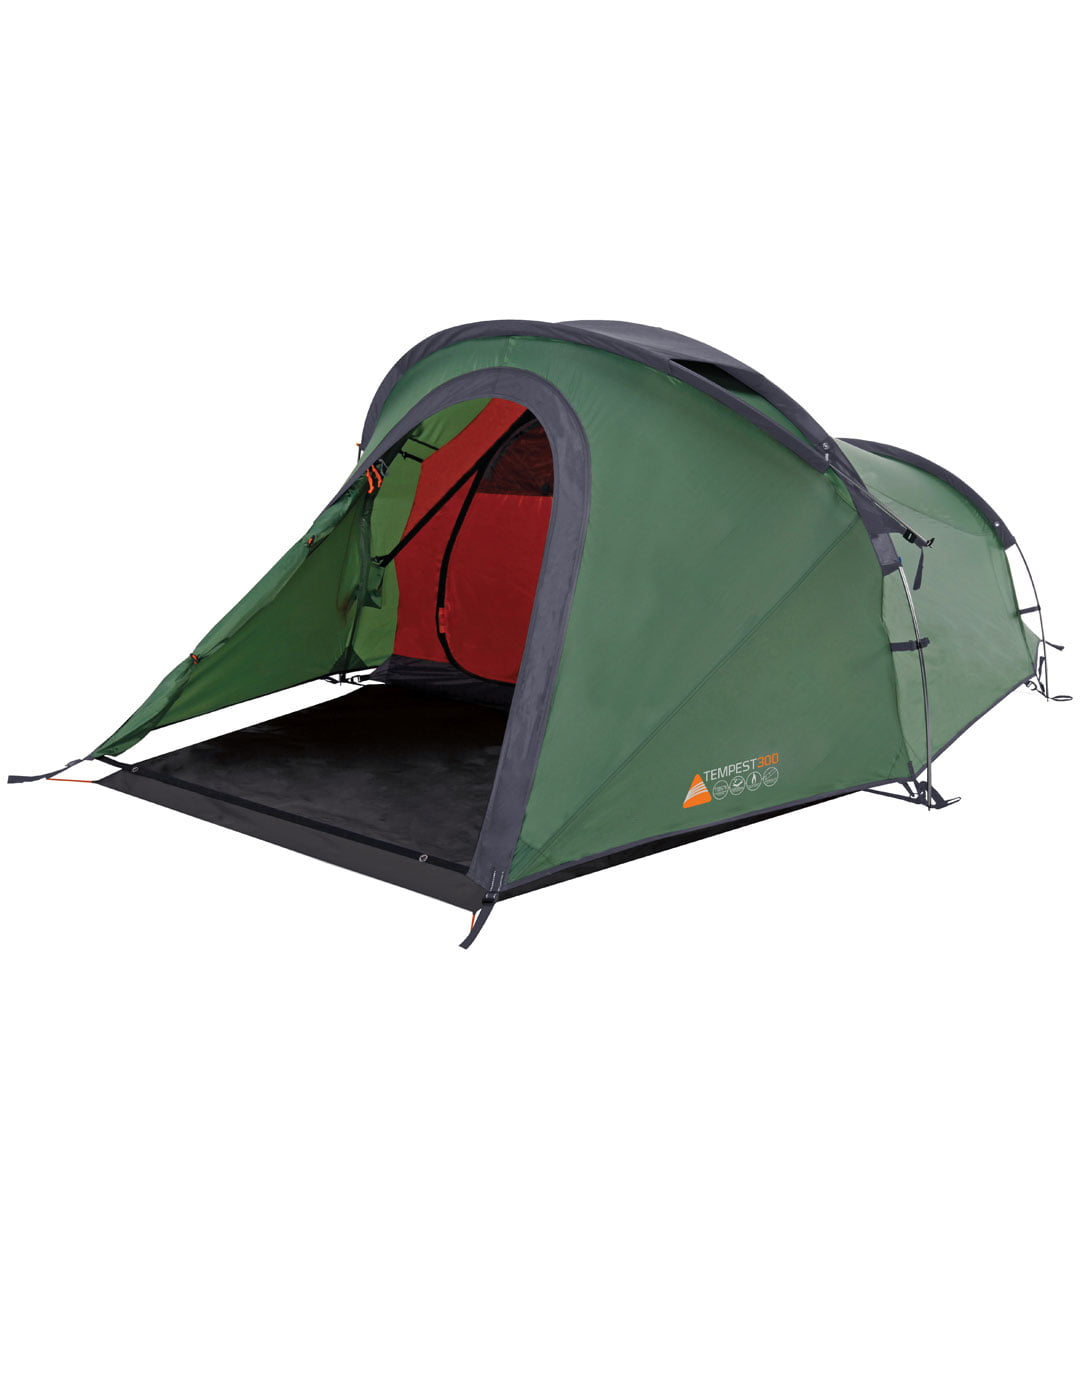 Standard 3 Person Tent Hire - CampingKitHire.com